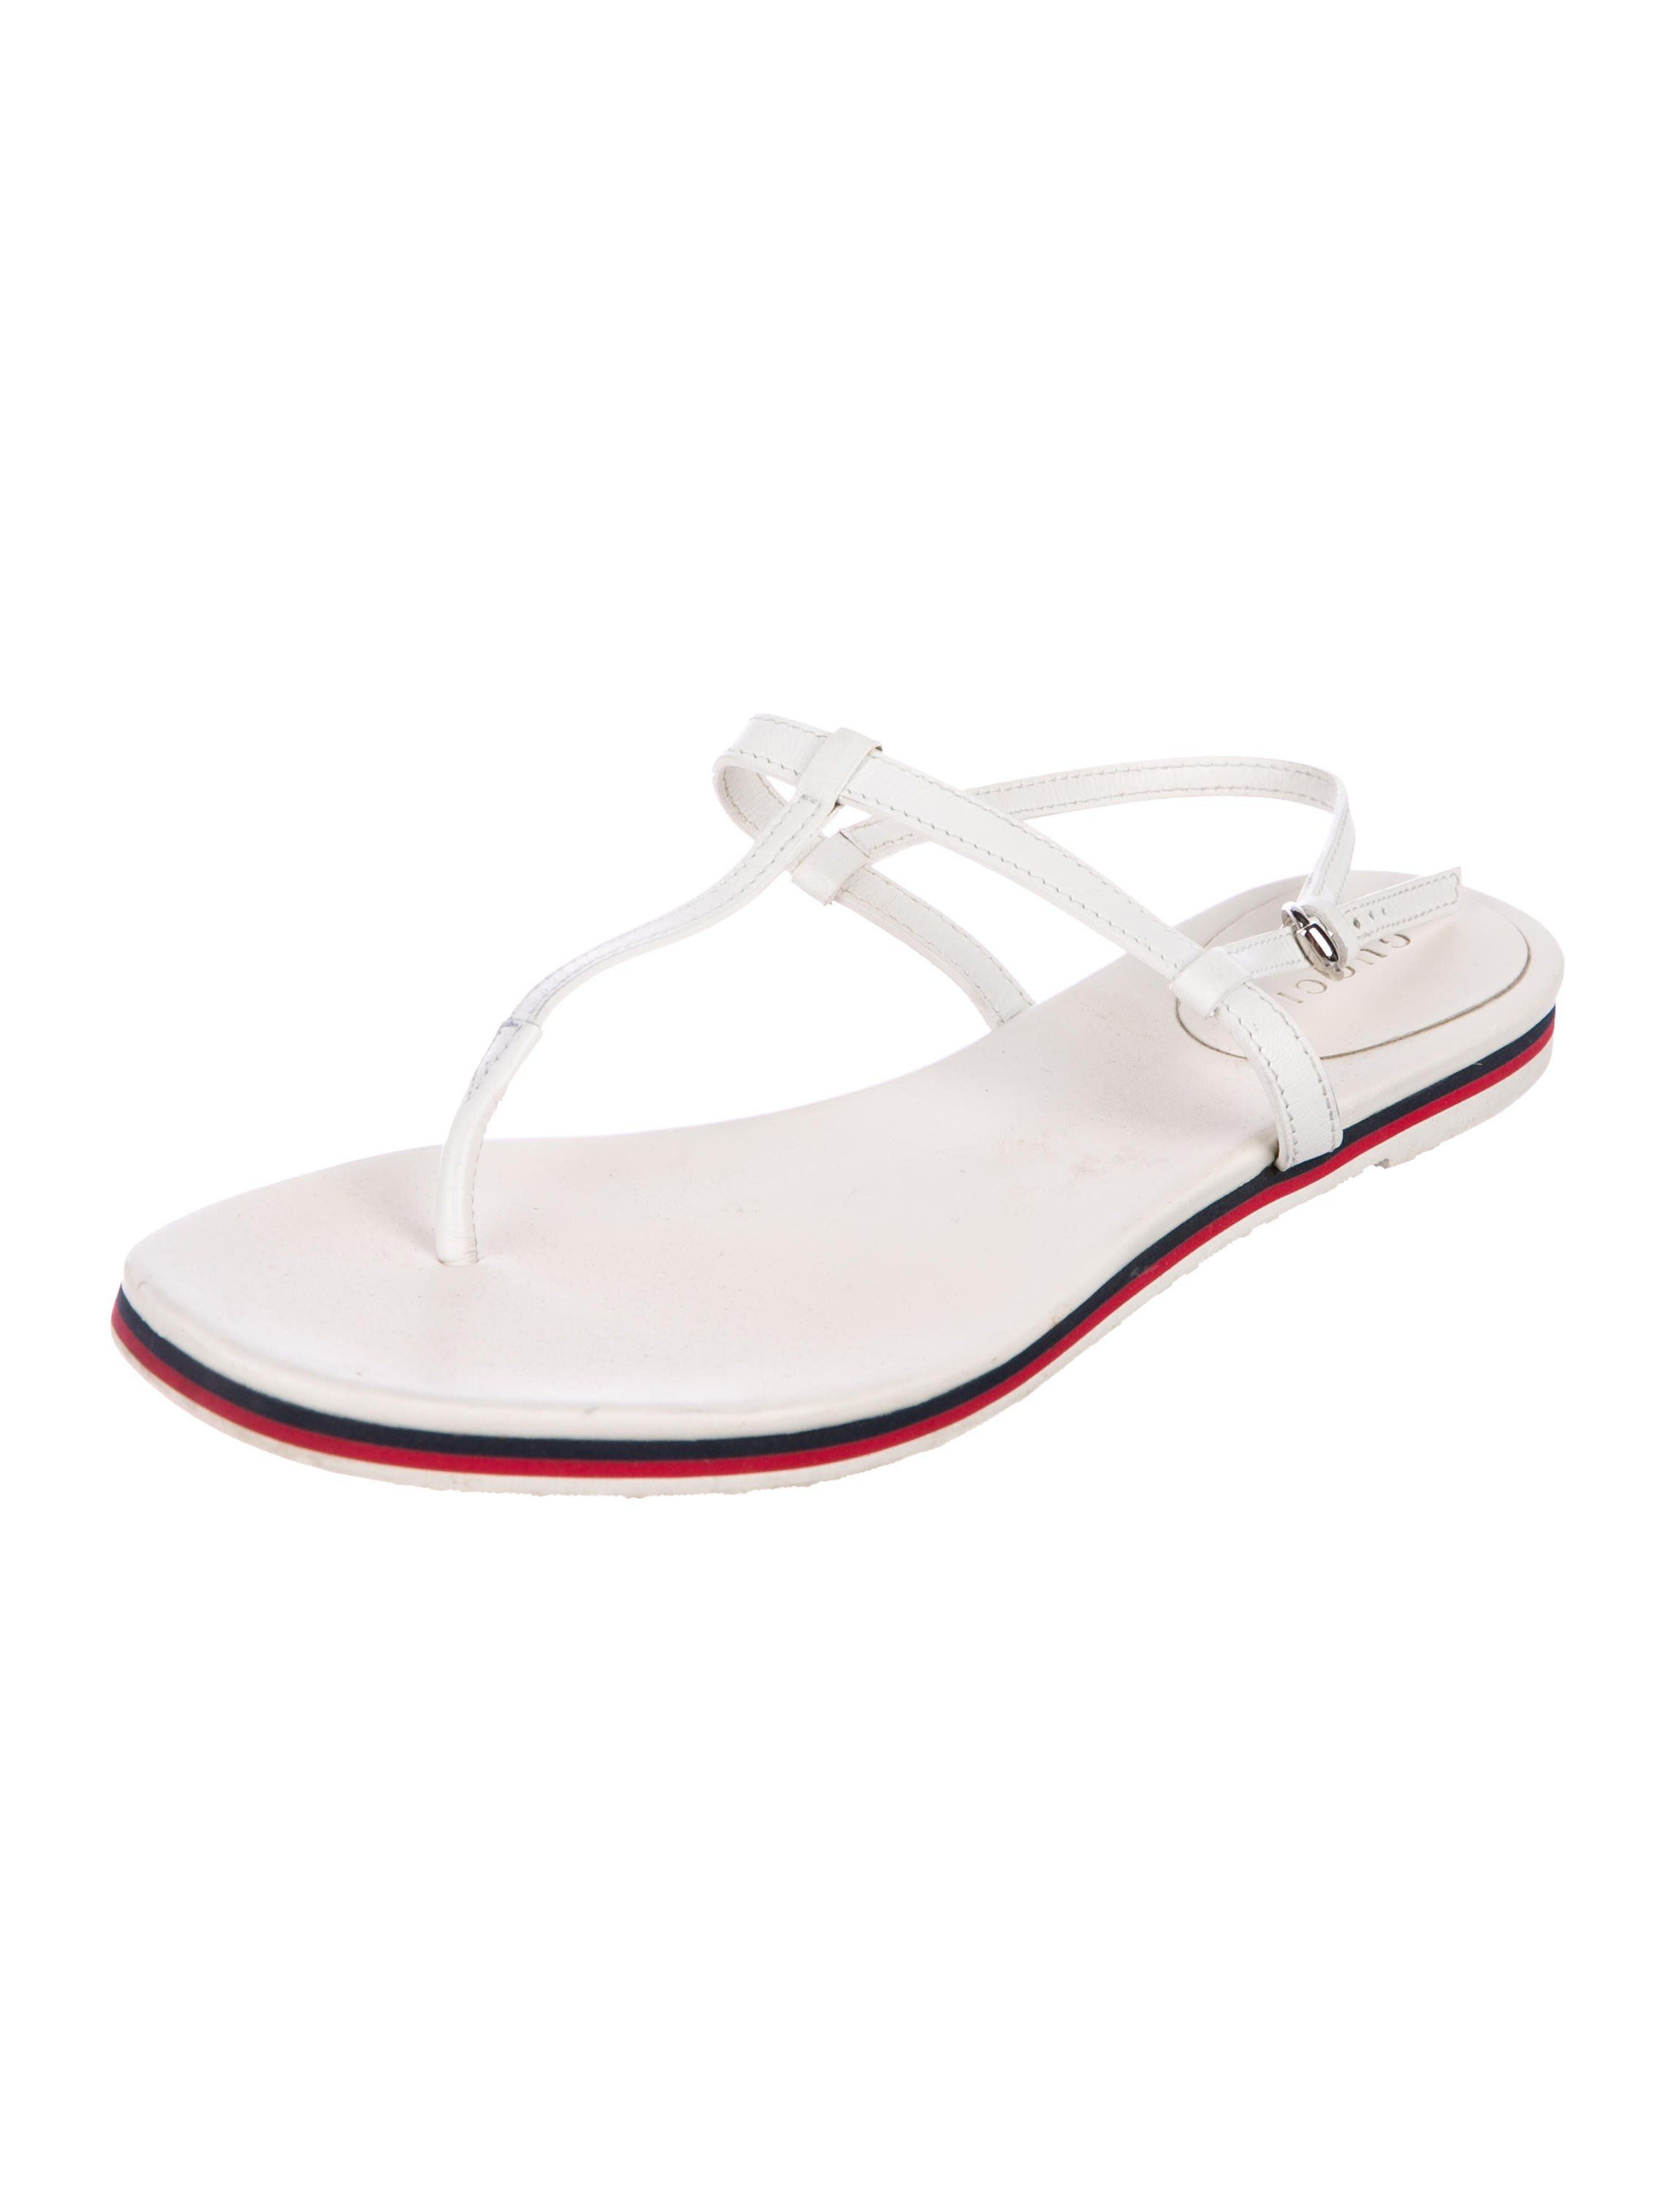 7de4ce7624bc White leather Gucci thong sandals with Web details at side straps and  stacked heels. Size not listed